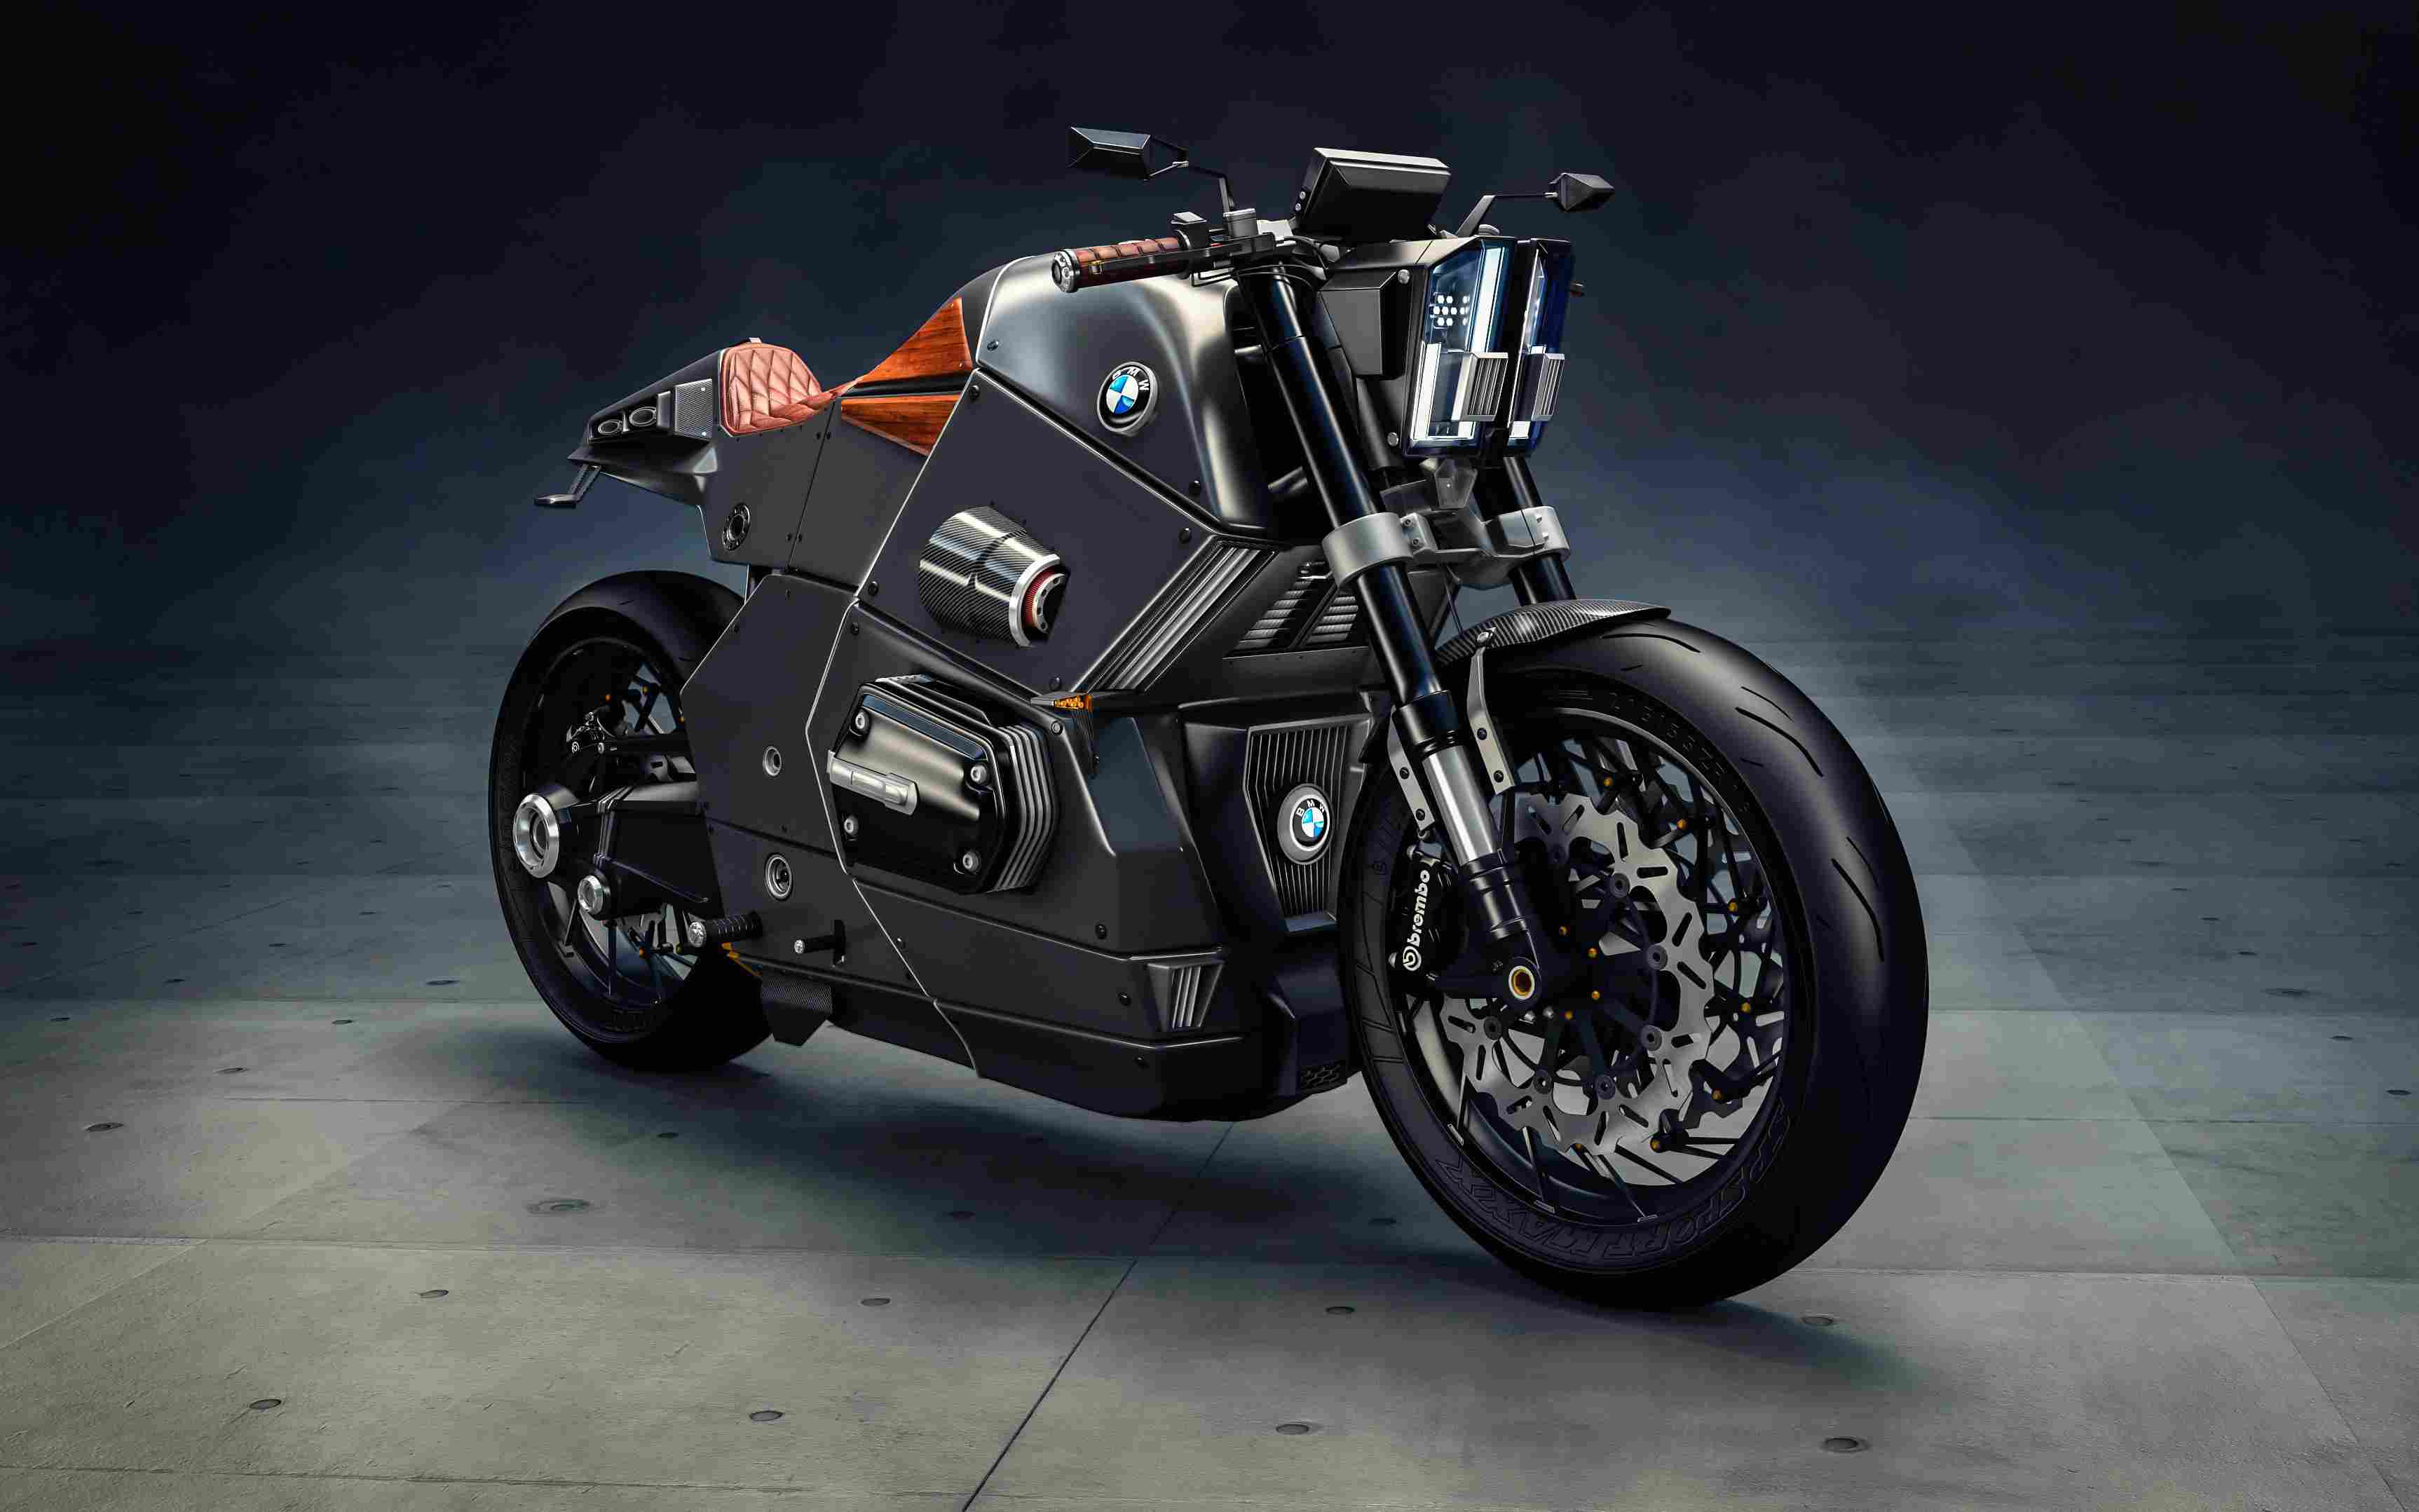 10 Of The Wildest Motorcycles Ever Built